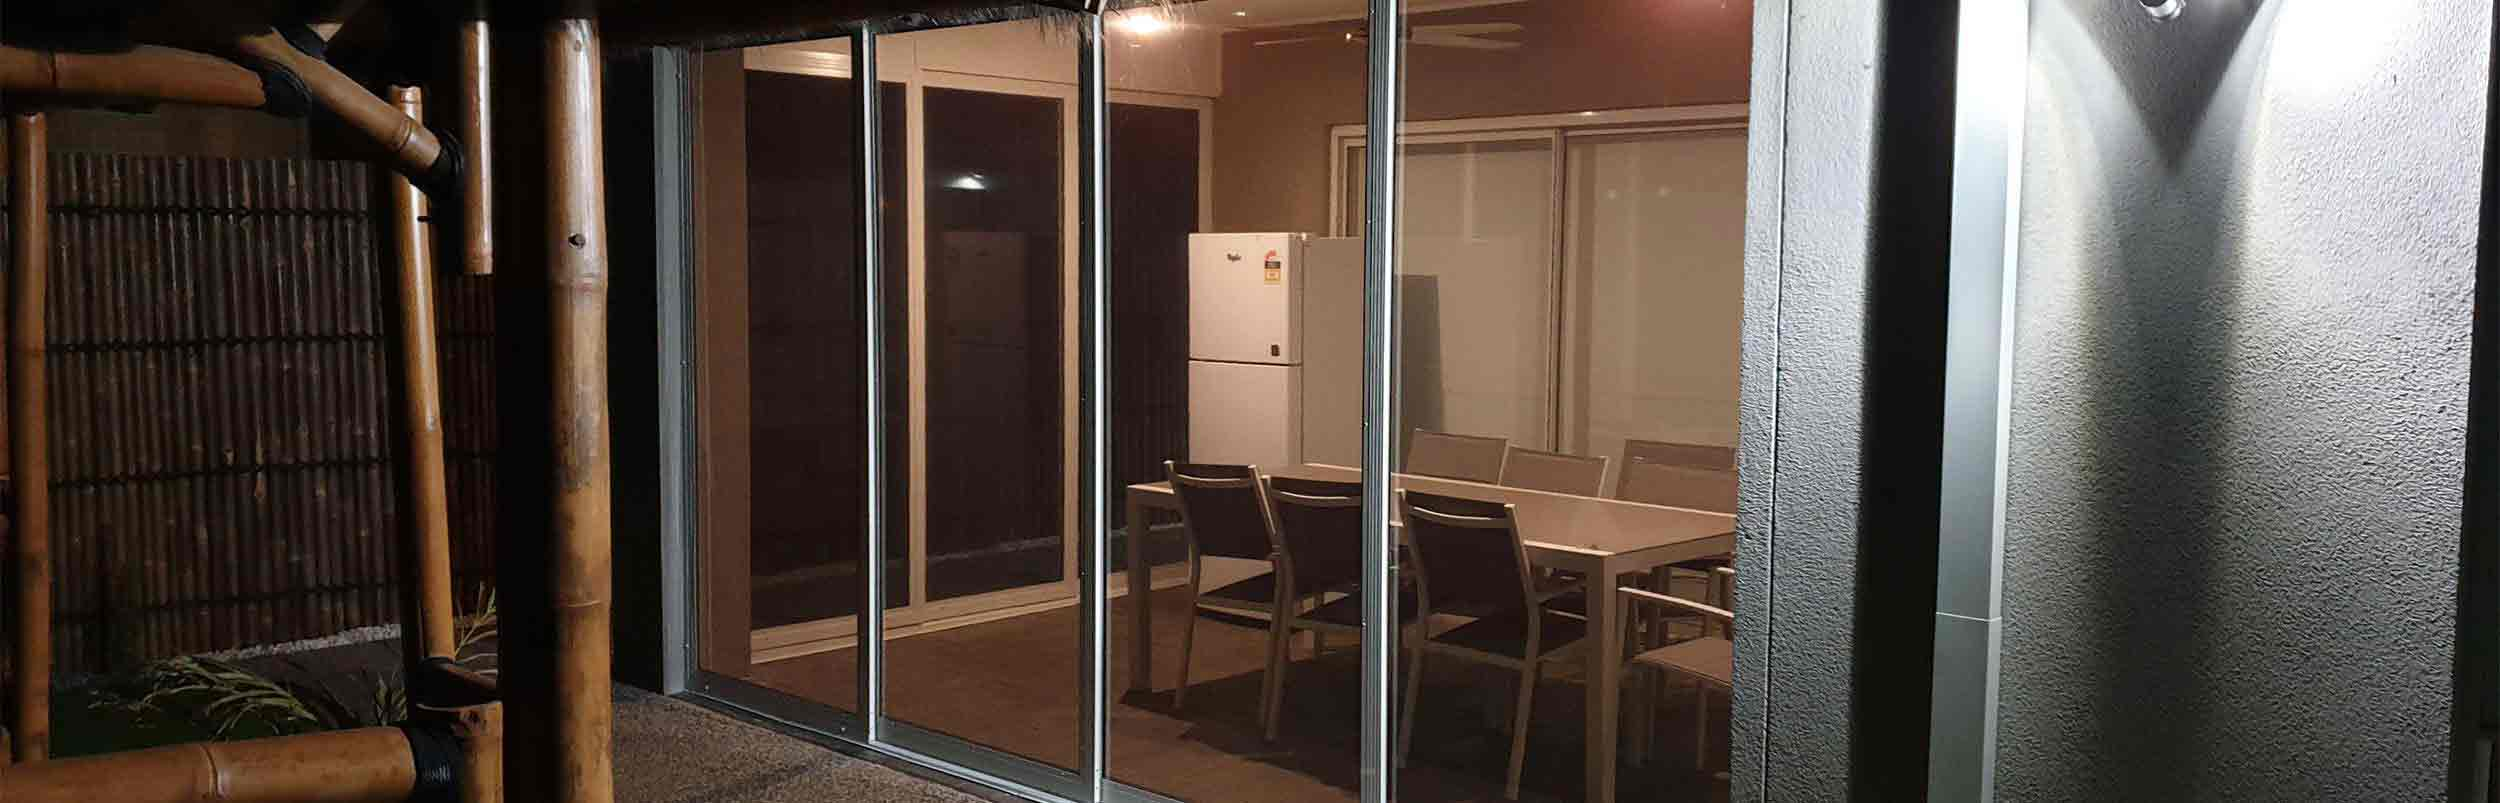 cafe-blinds-patio-doors